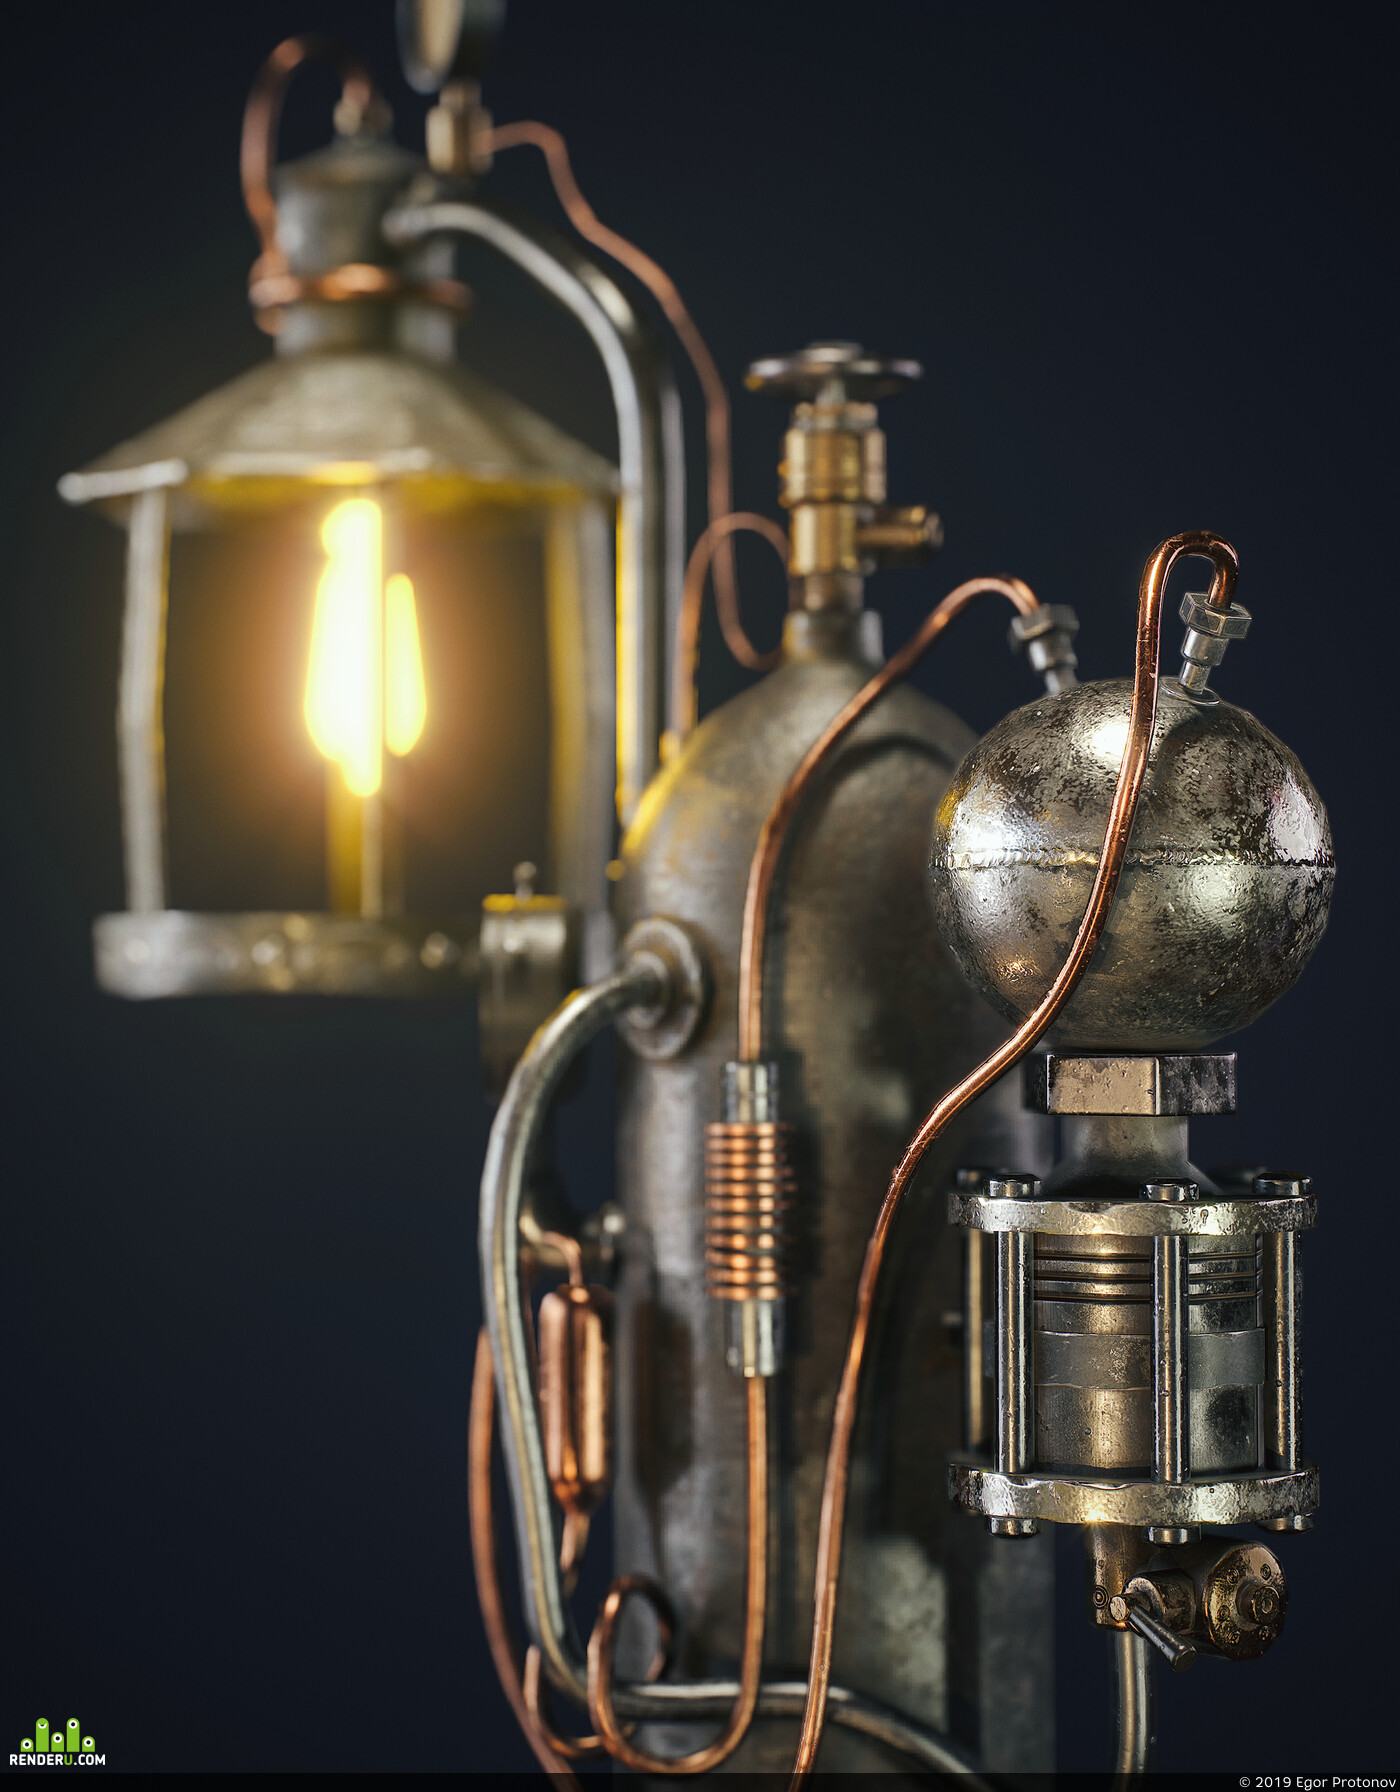 3d, game, art, Компьютерная графика/CG, Lamp, steampunk, Game props